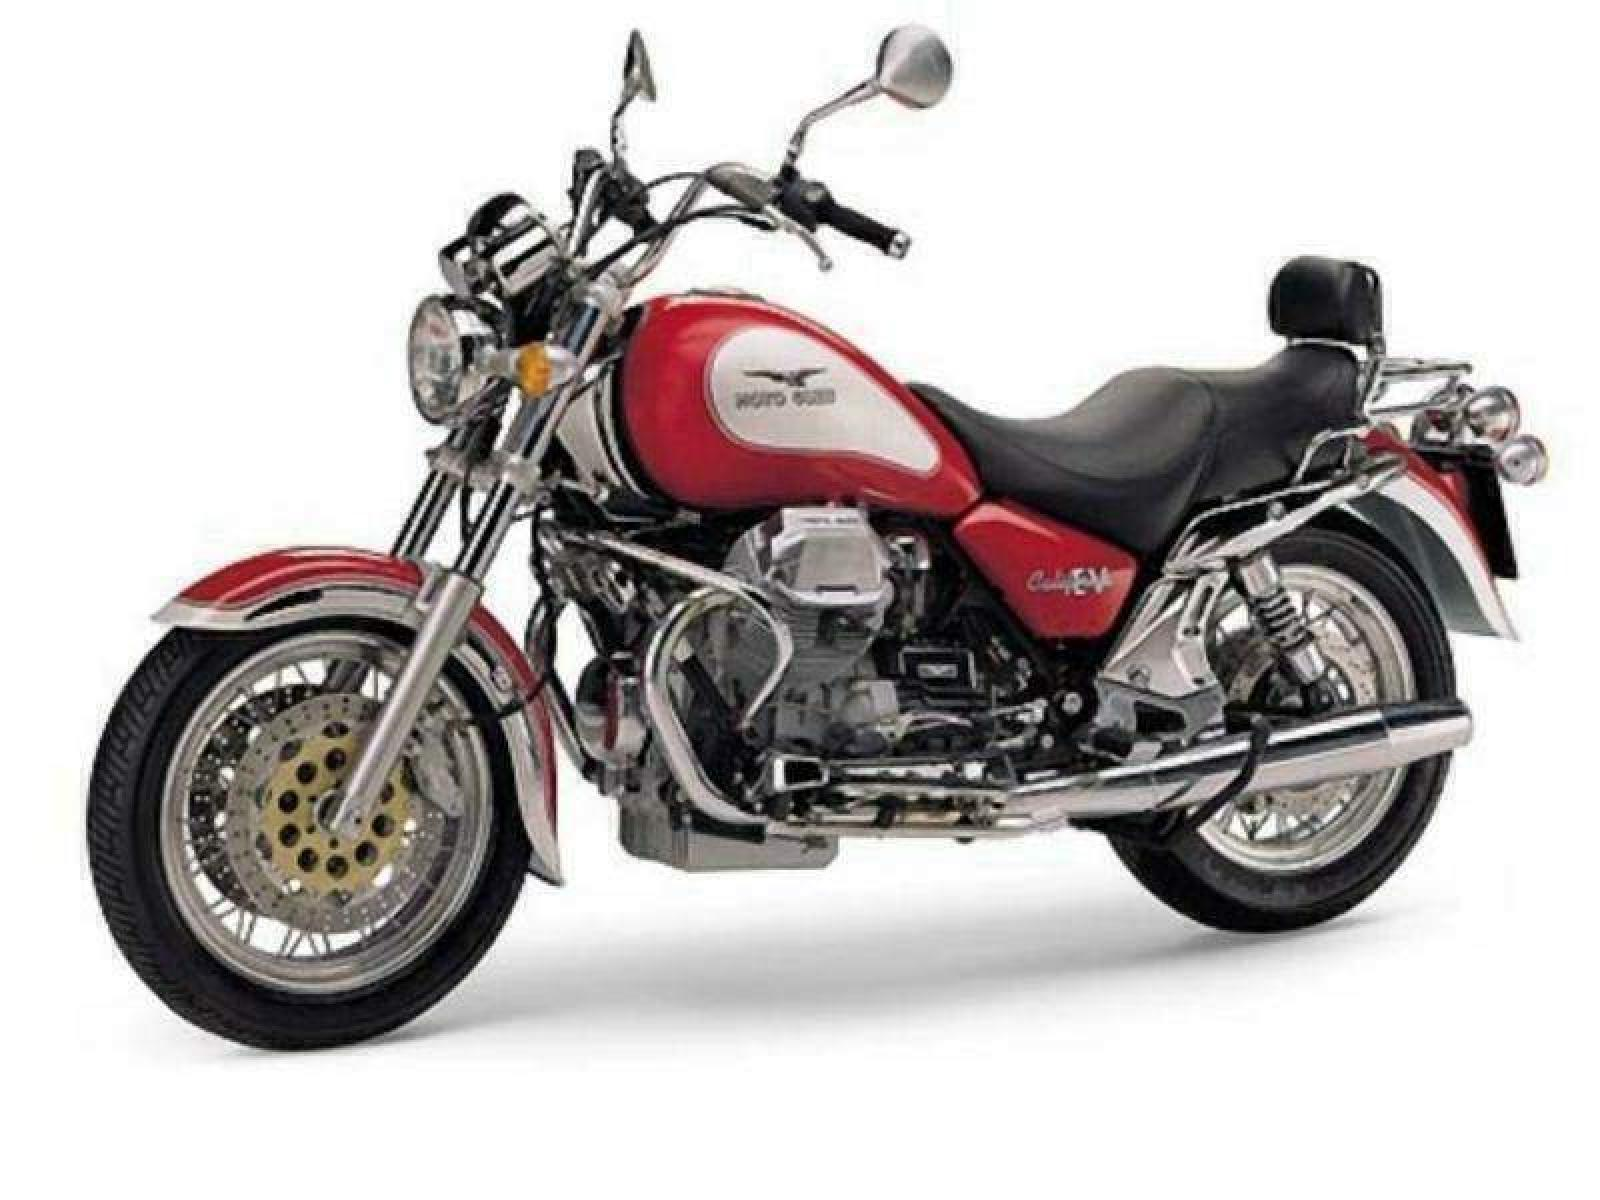 Moto Guzzi California 1100 F images #108762